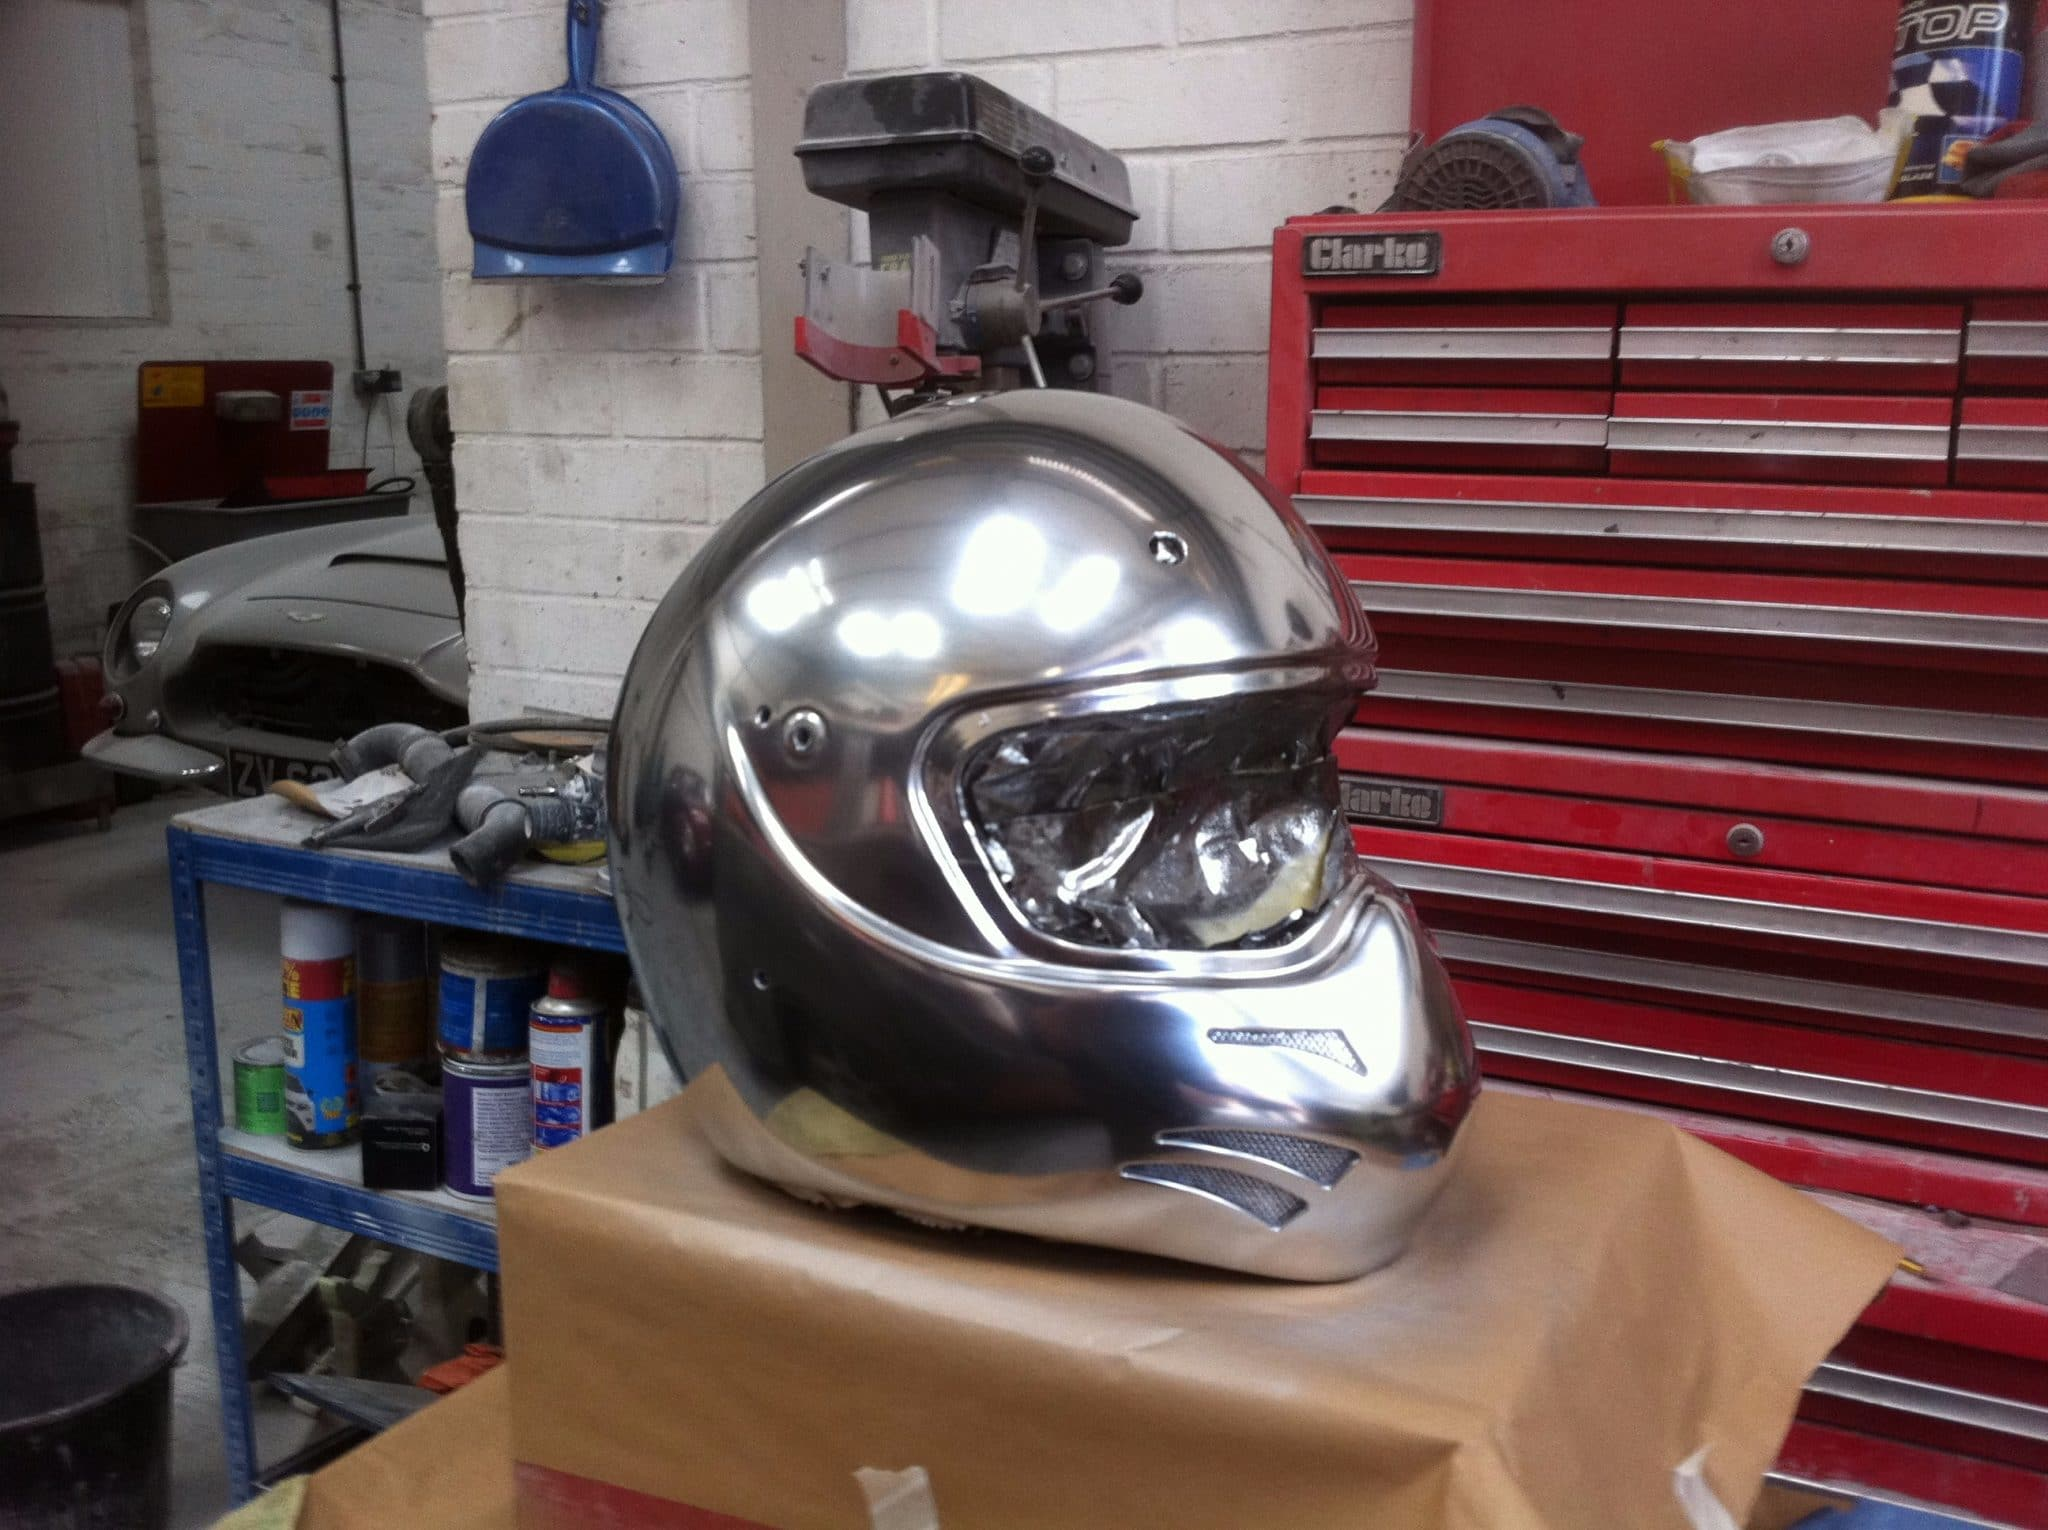 silver, chrome helmet